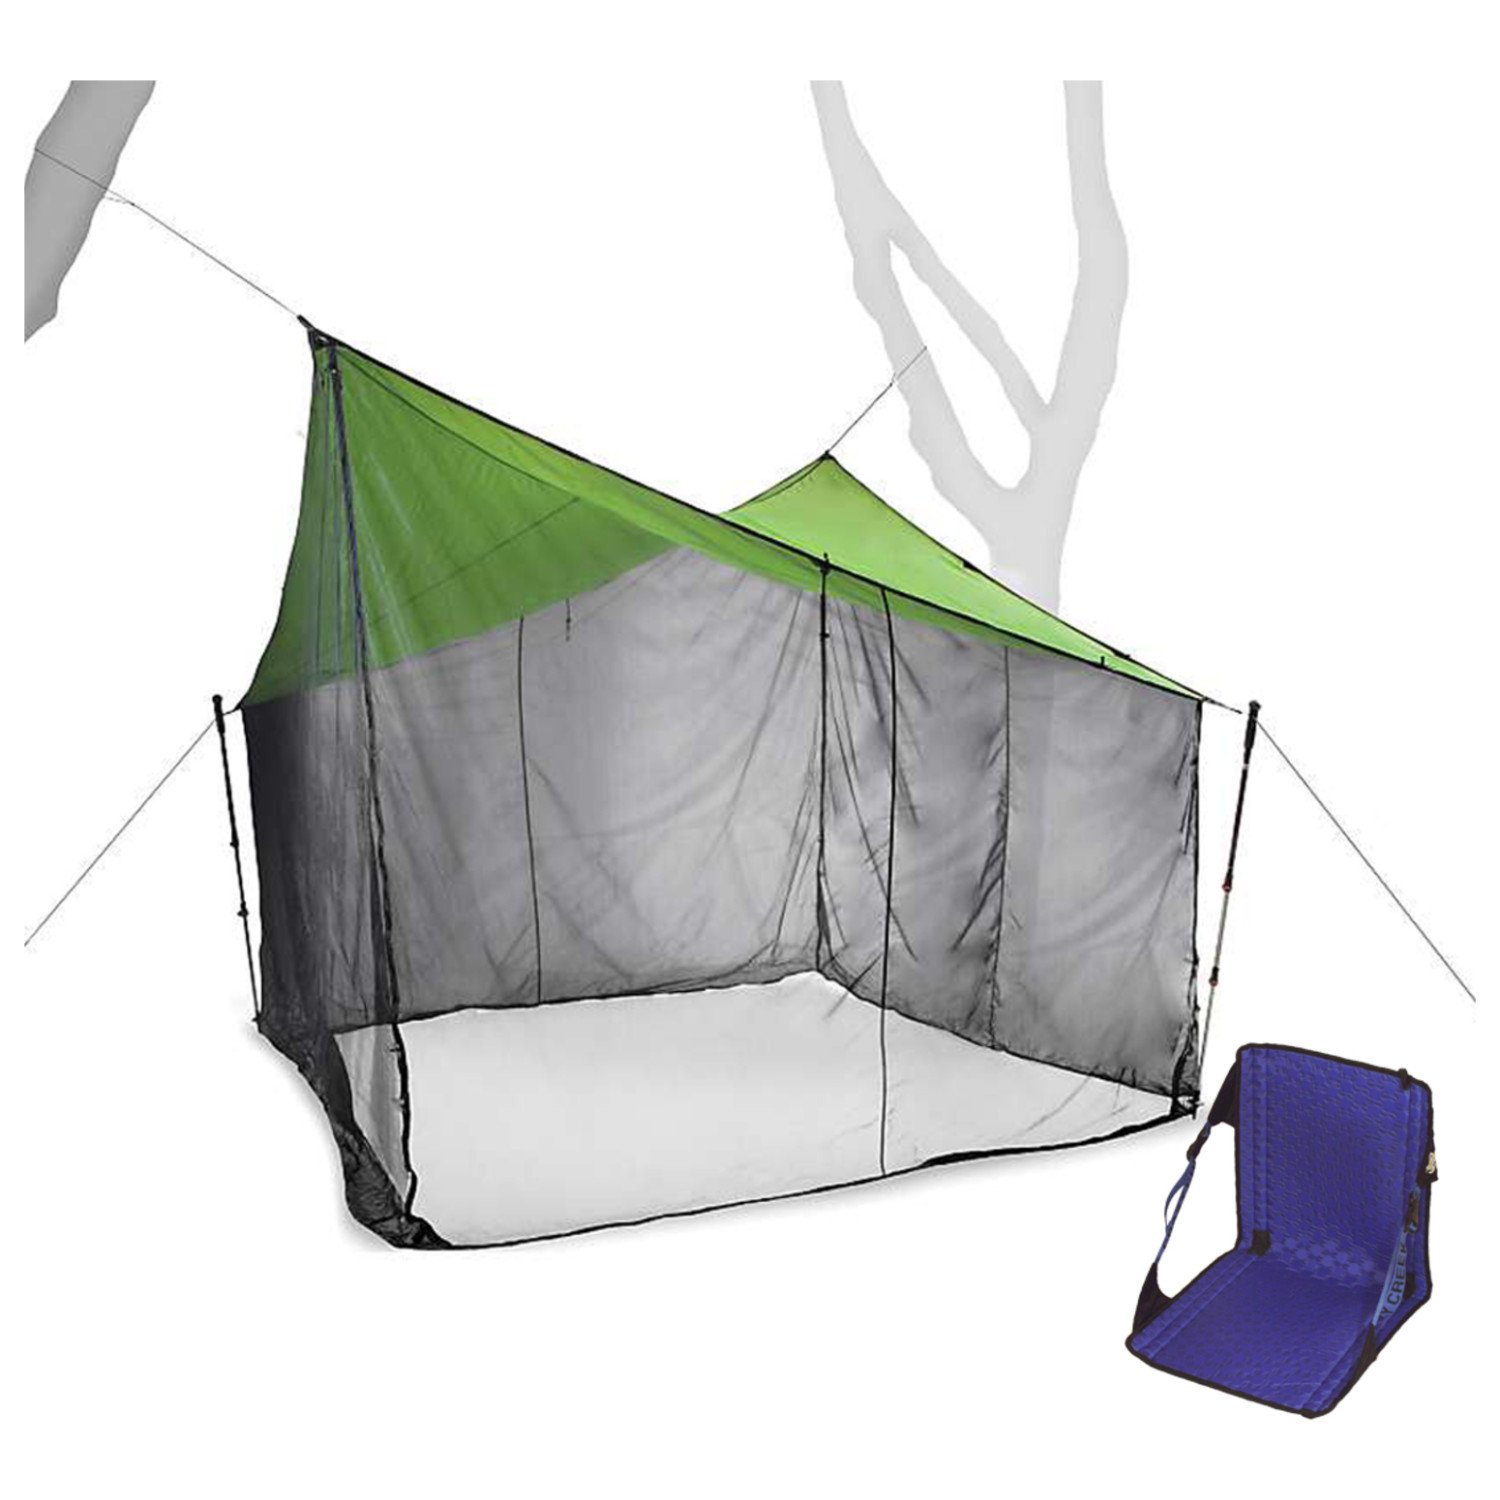 Nemo Bugout 9x9 Bug Shelter w/ Free Campng Chair